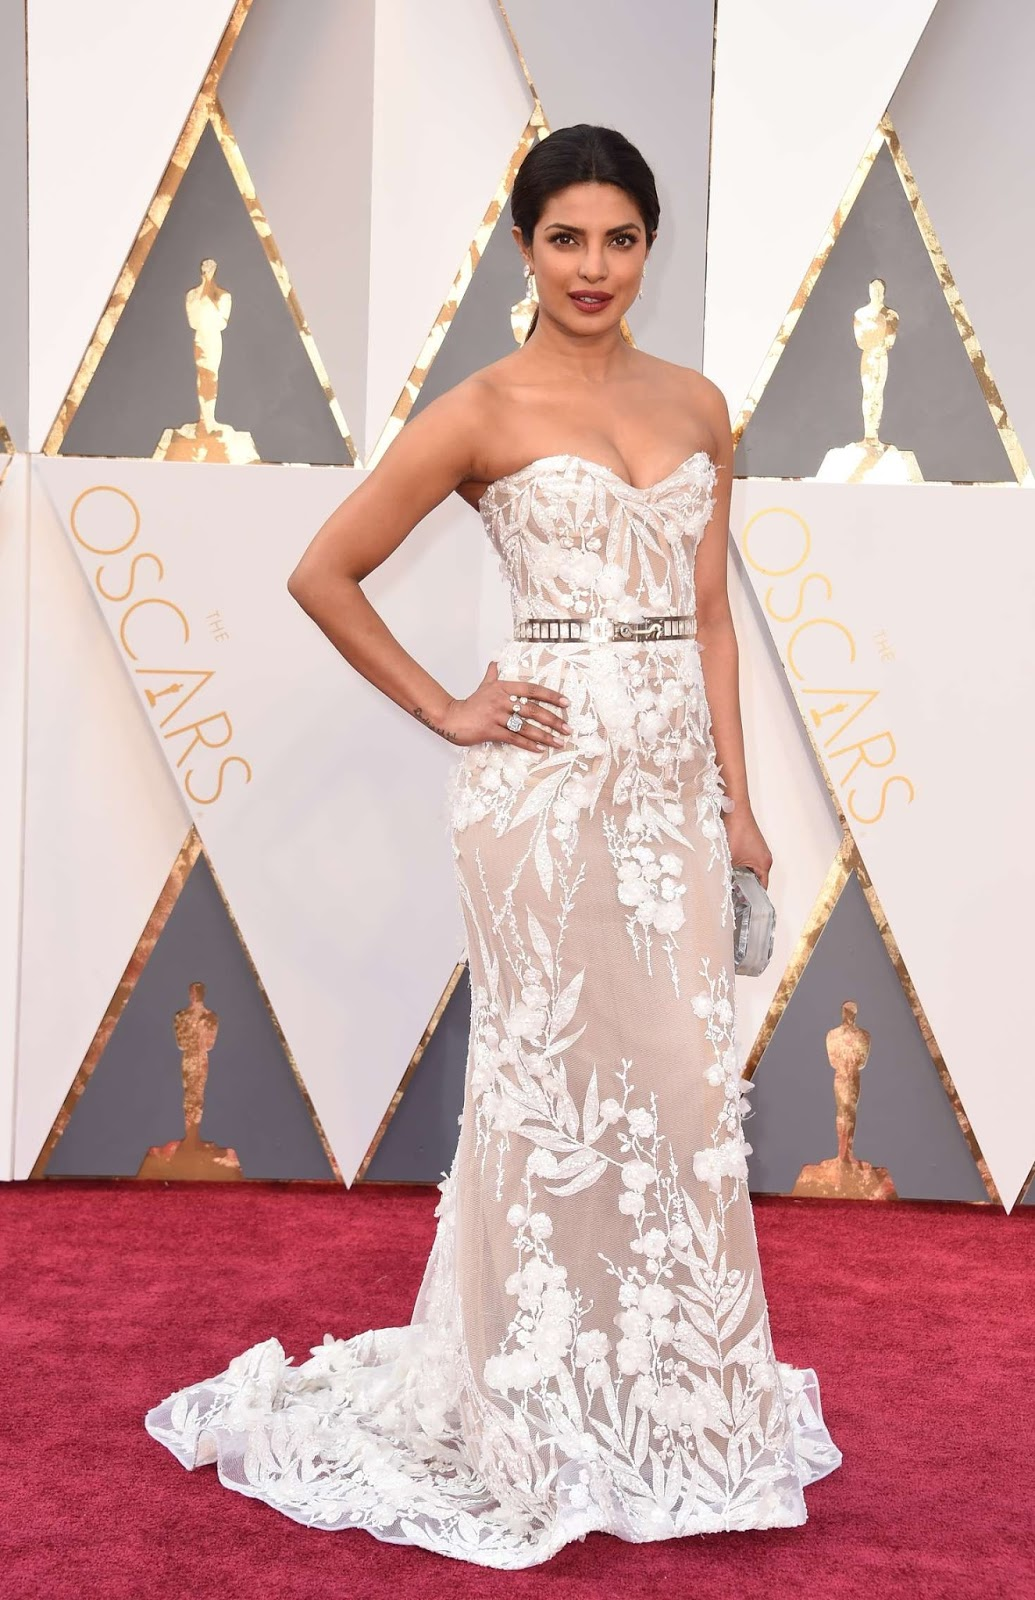 Priyanka Chopra At Oscars Awards